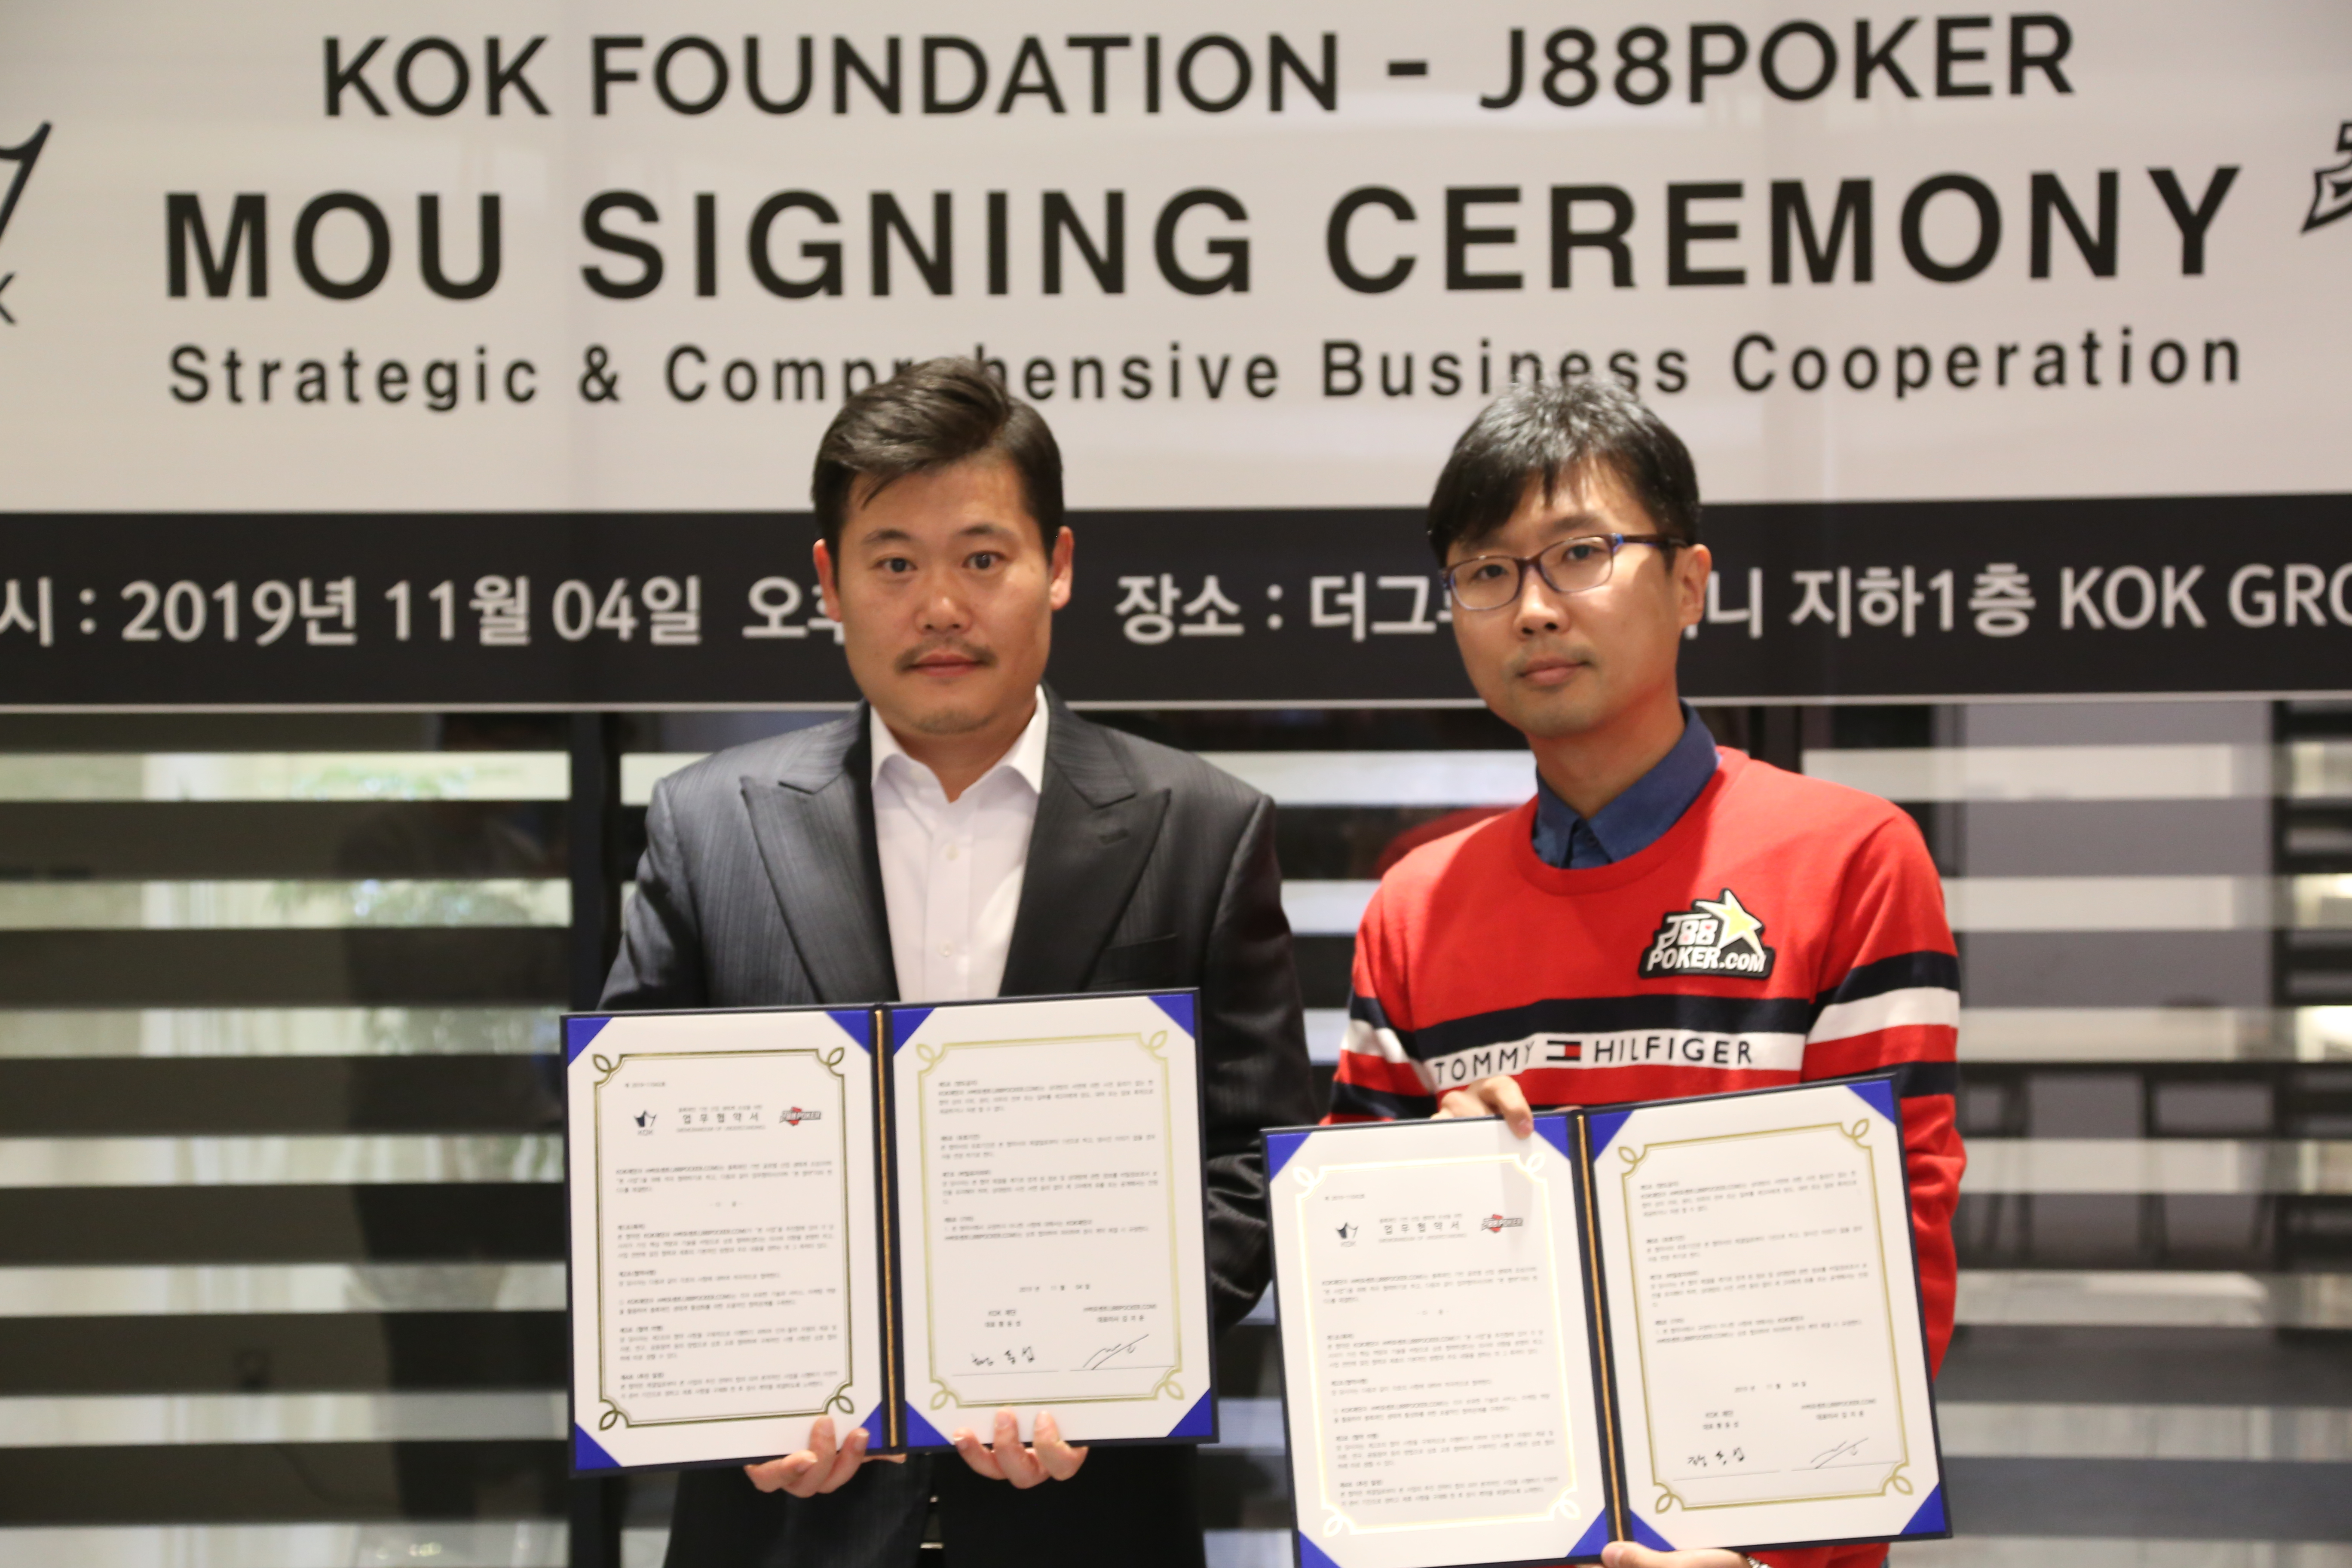 KOK PLAY signed MOU with J88 POKER for the game platform expansion.